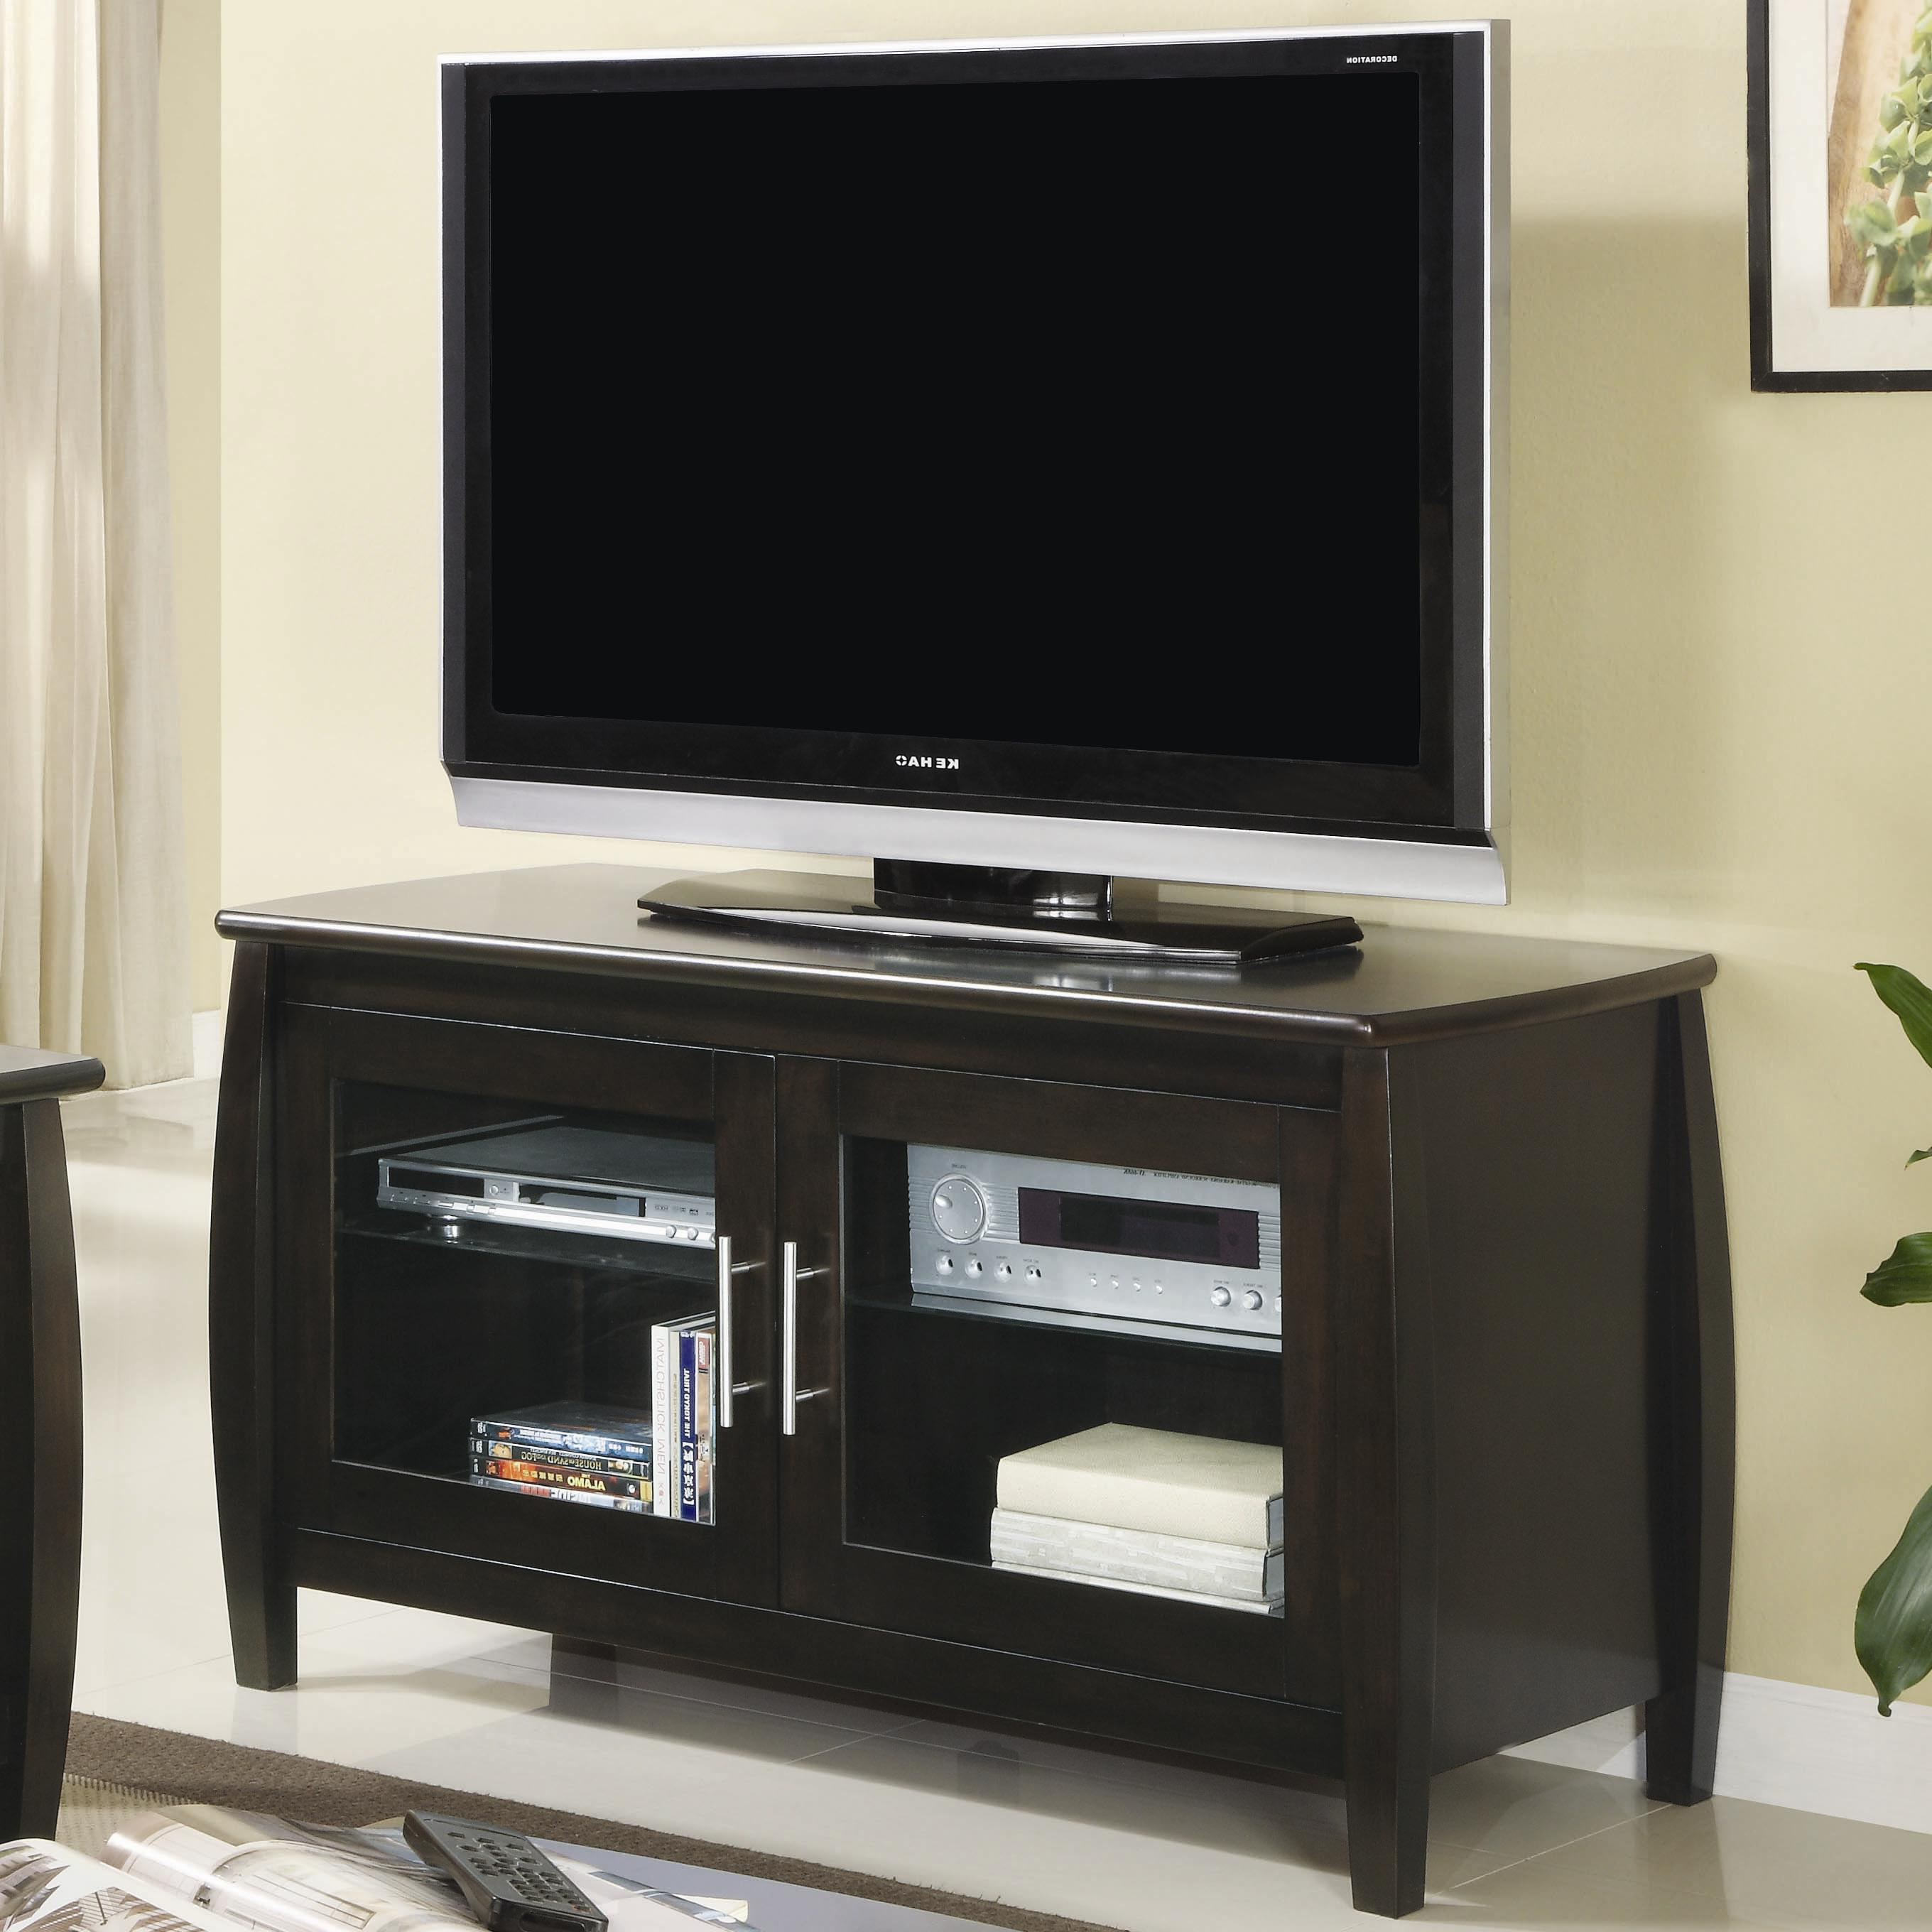 Tv Cabinets With Glass Doors In Well Known Coaster Tv Stands Contemporary Media Console With Glass Doors (View 17 of 20)